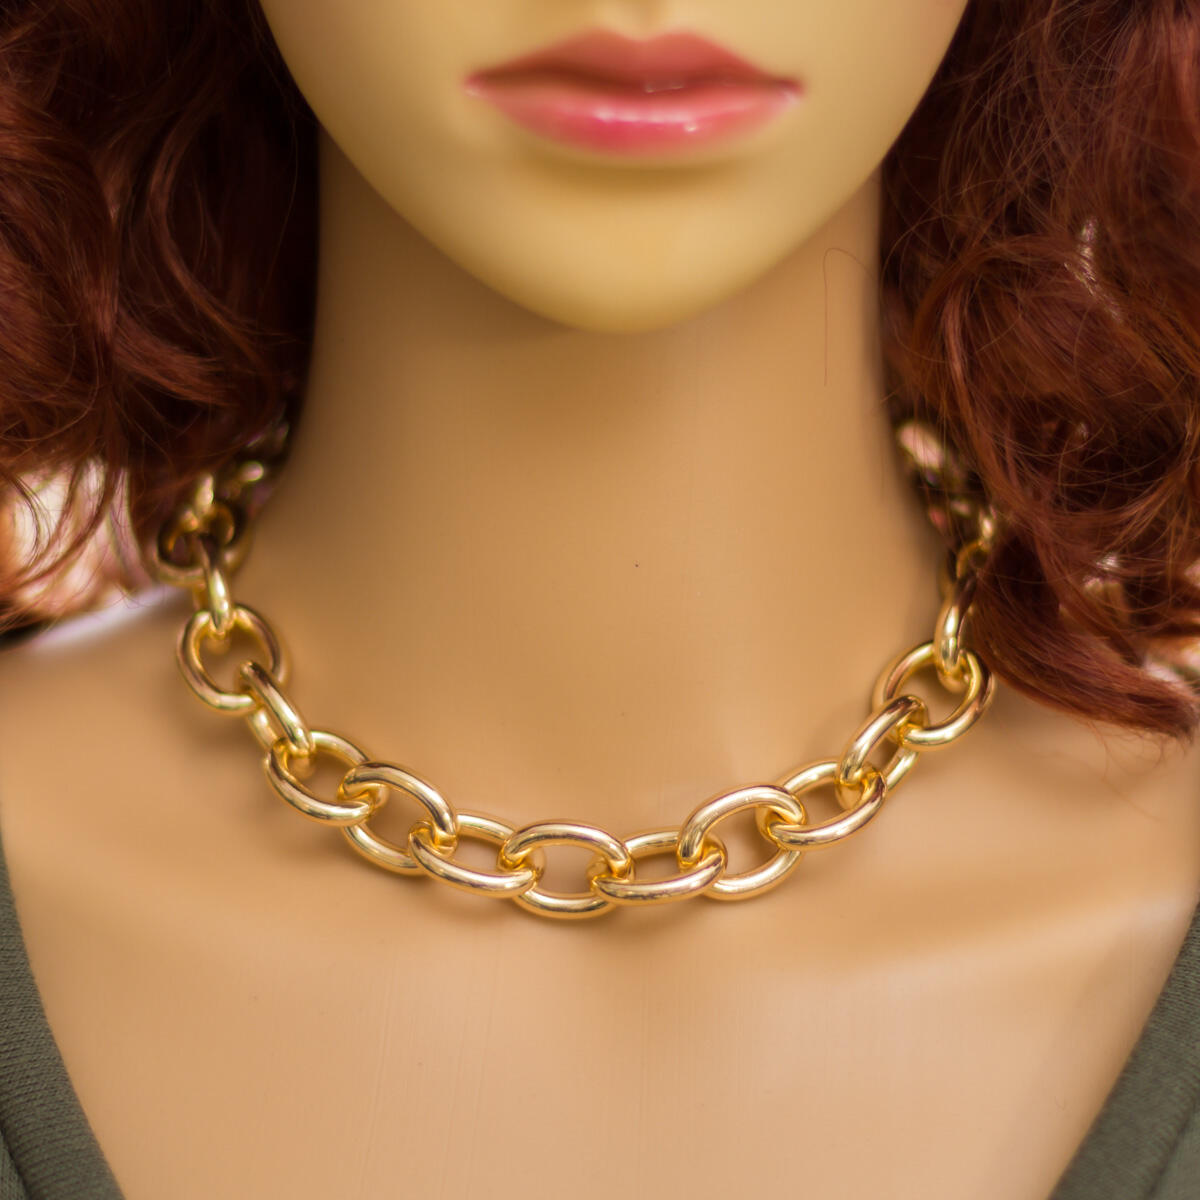 Chunky Chain Necklace - Thick Chain Necklace Choker Trendy Necklaces Cable Link Chain Choker Necklaces for Women Chunky Necklace Punk Metal Fashion Necklace for Girls Cuban Link Chain Choker (Gold)